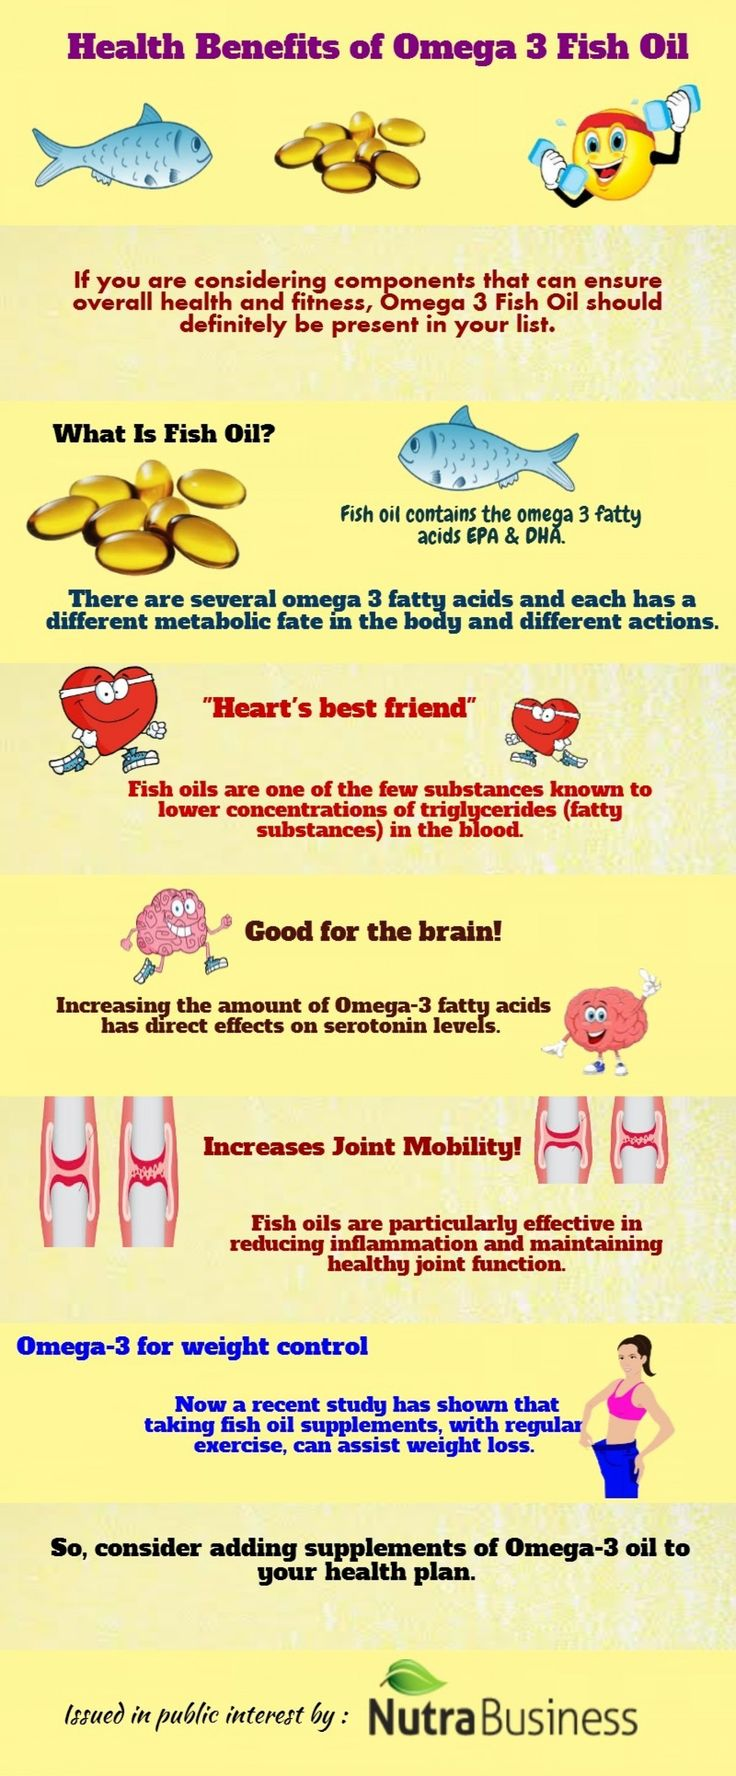 Health Benefits of Omega 3 #FishOil   #saturatedfats http://www.genetichealthplan.com/